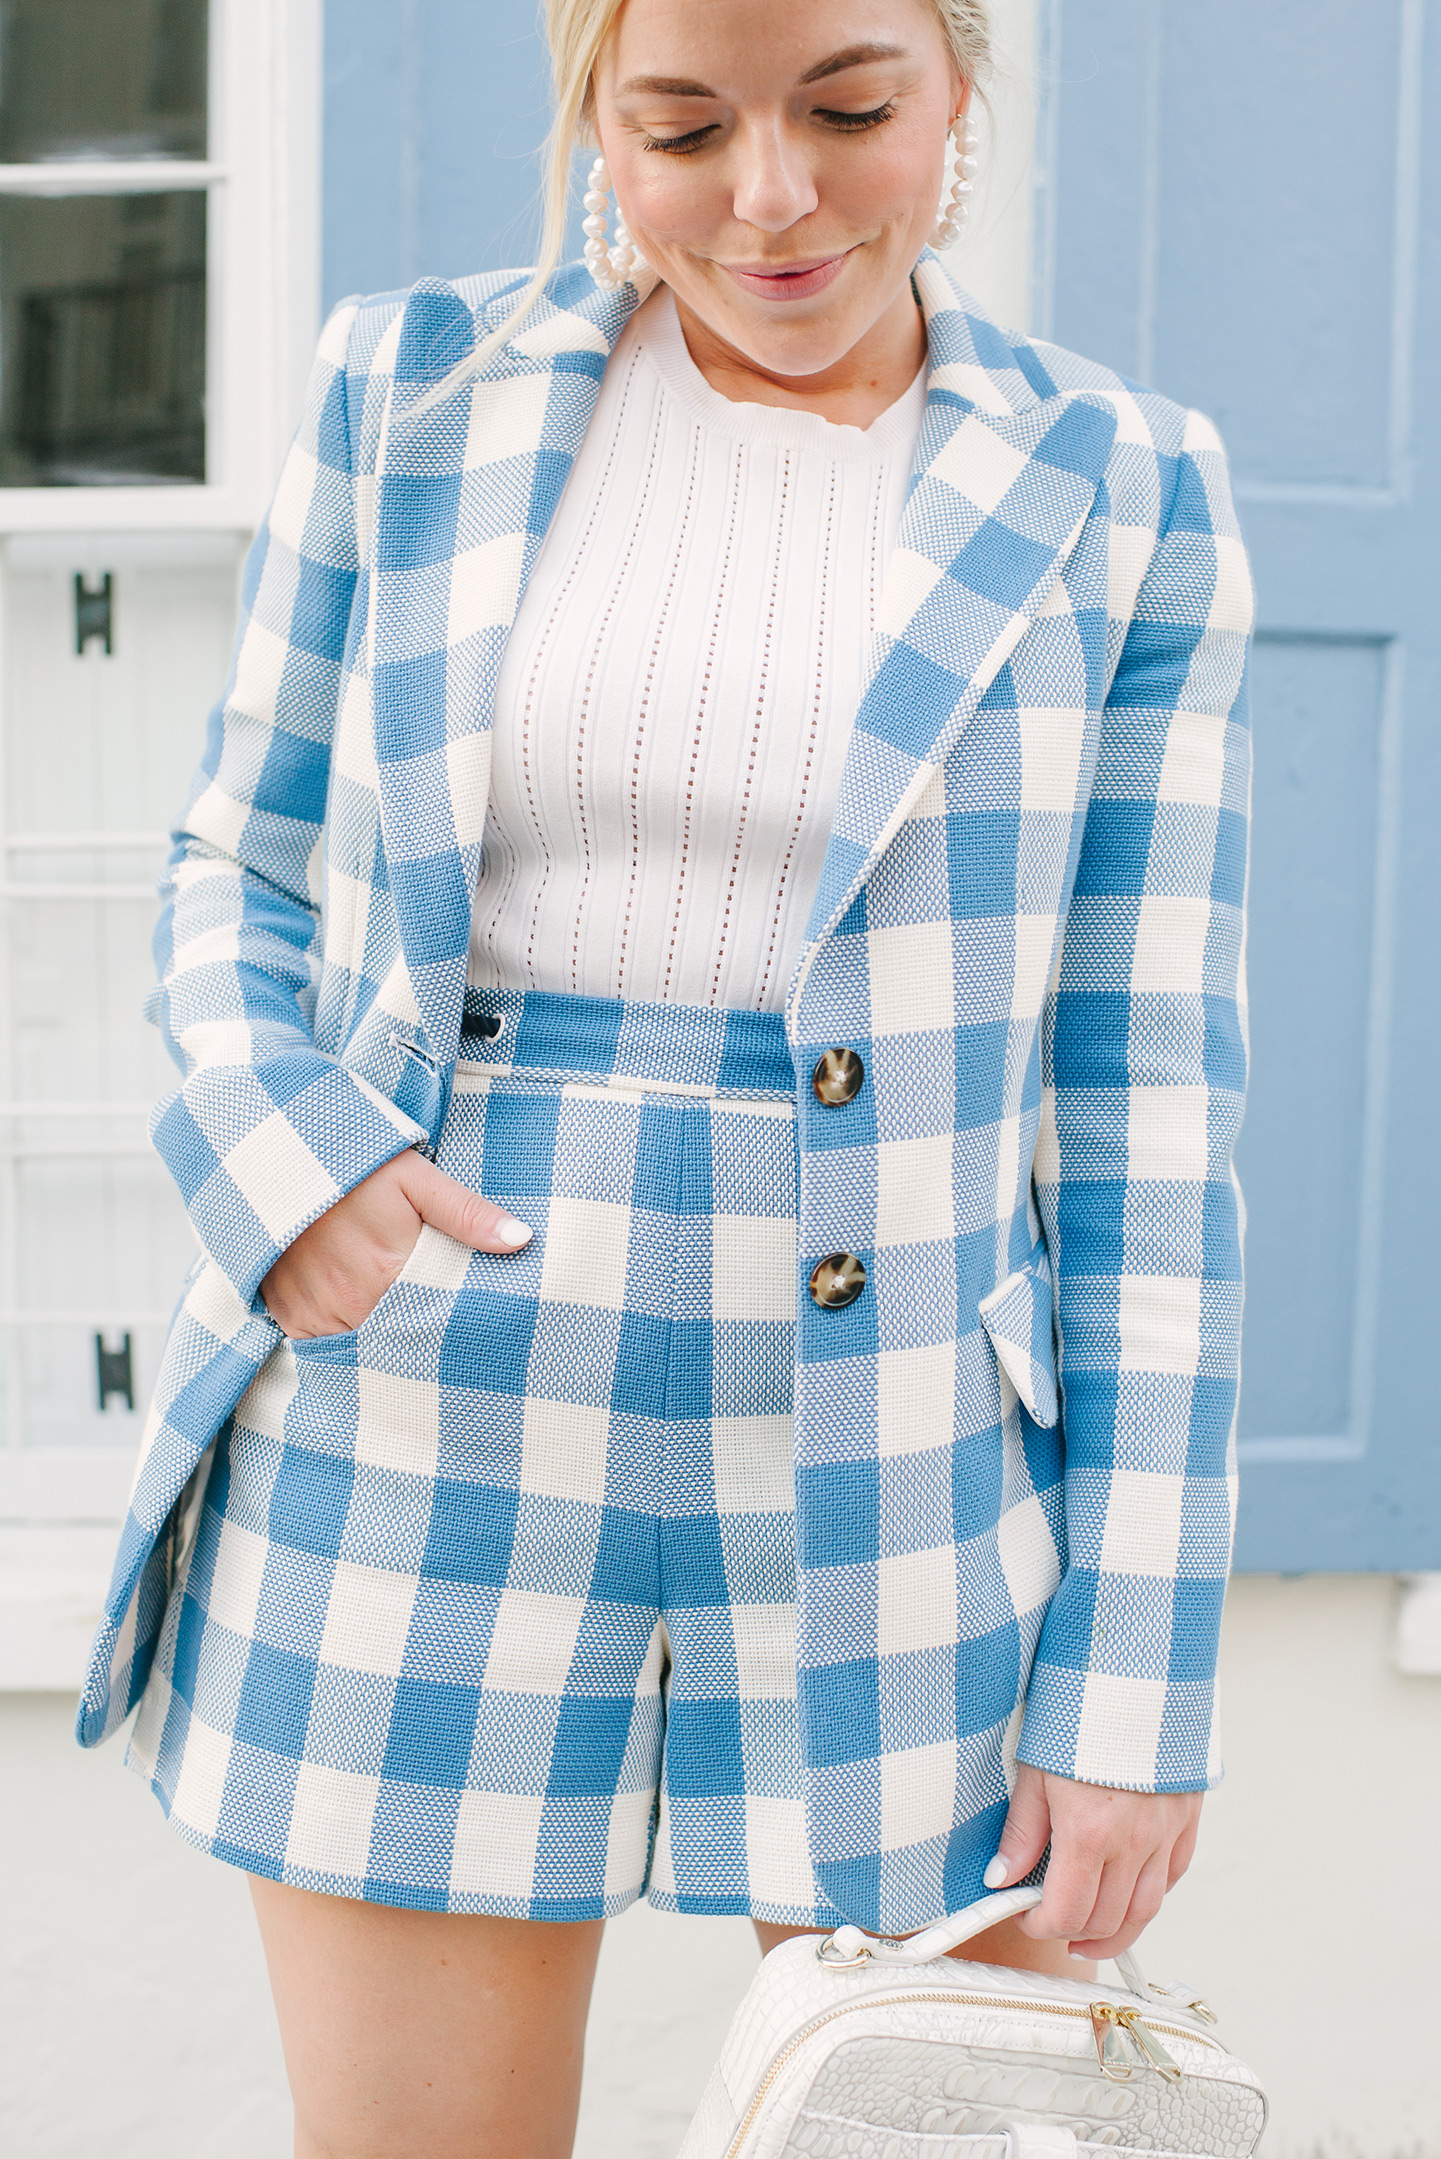 Blue + White Checkered Shorts + Blazer | COLOR by K